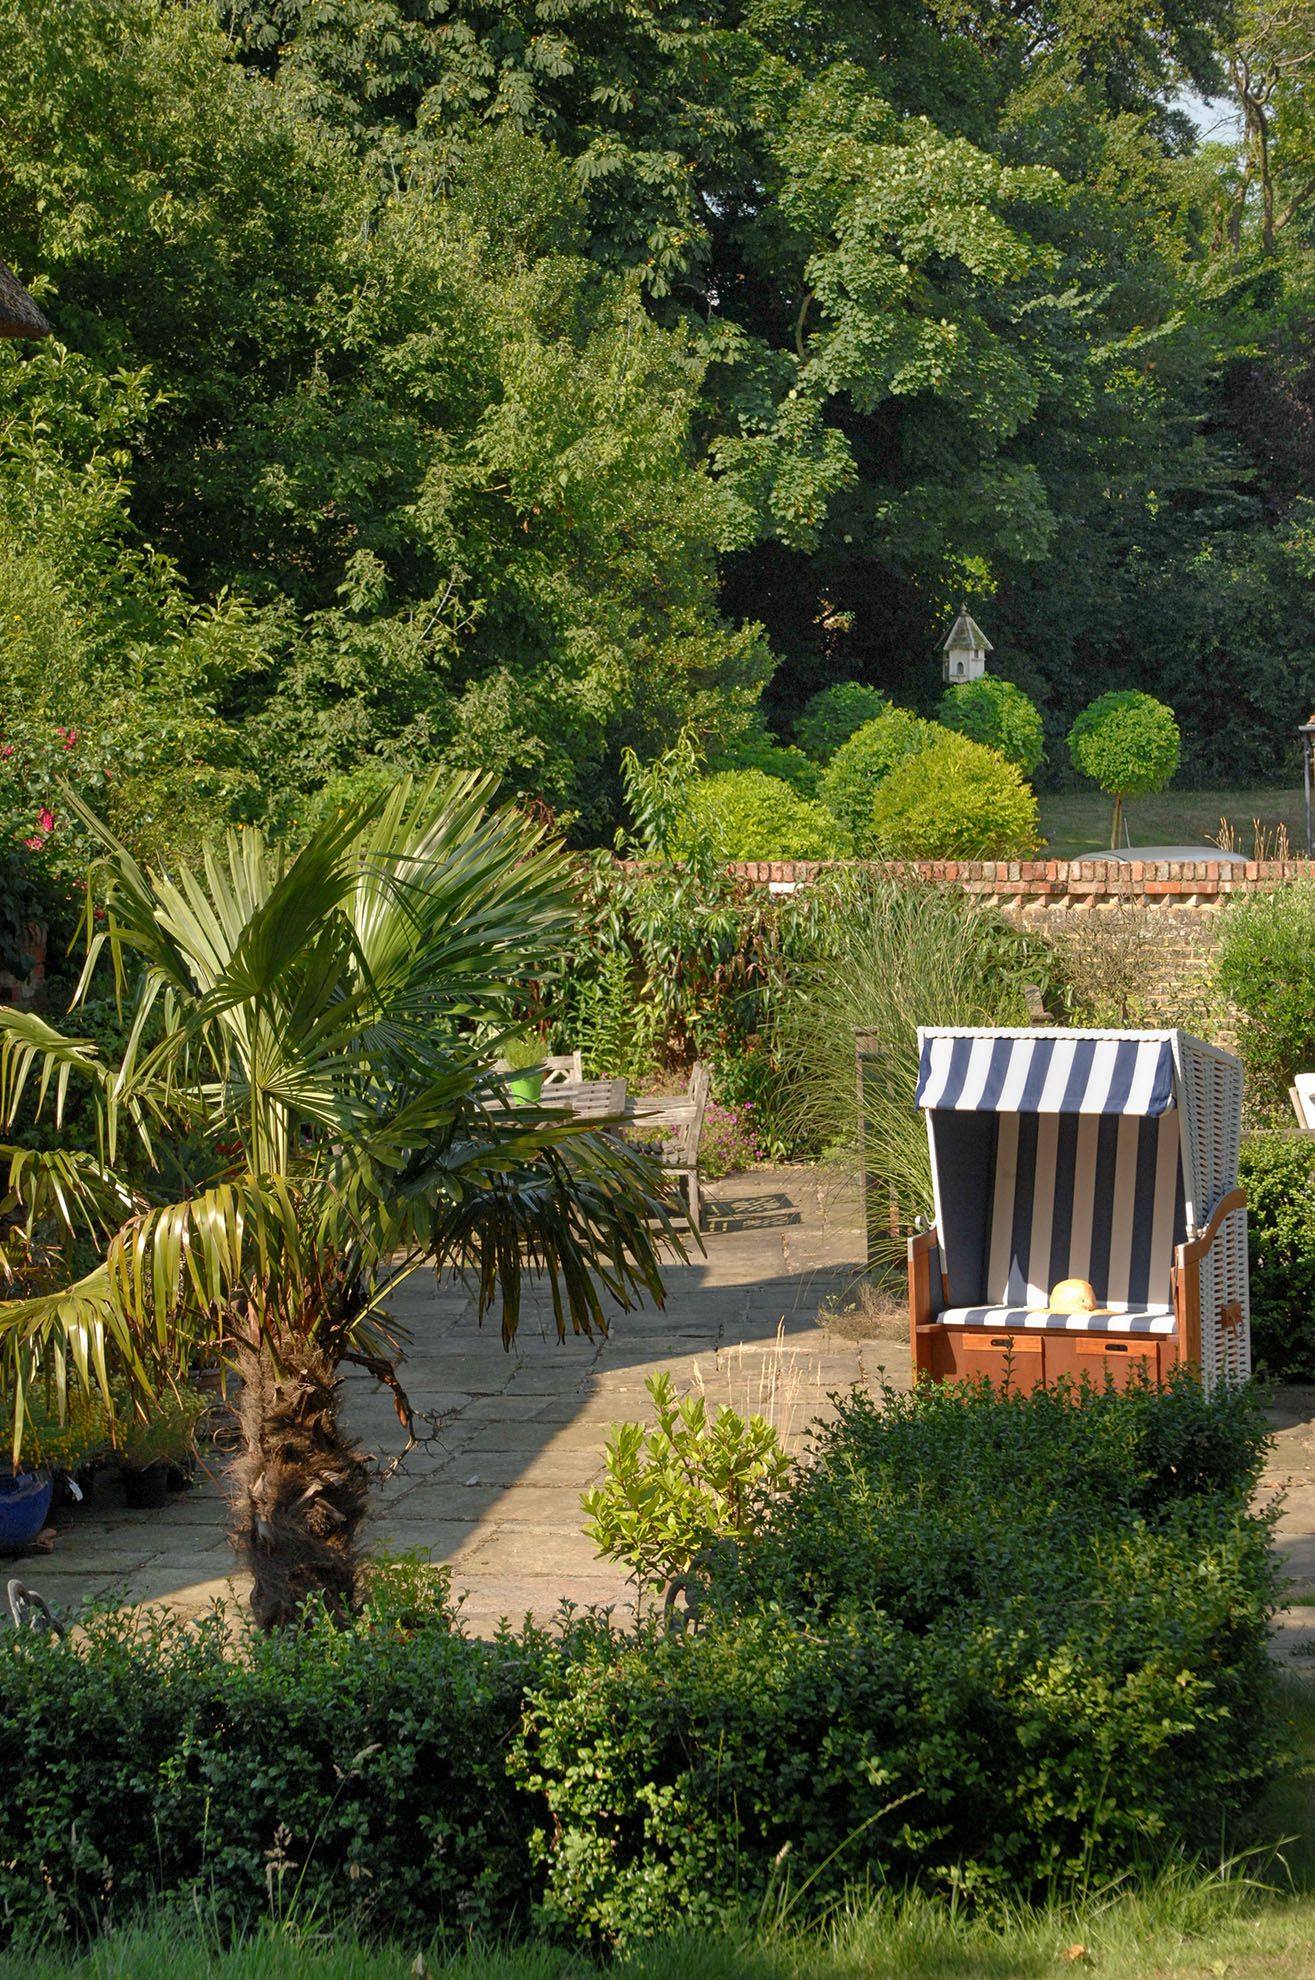 Two acres of beautifully landscaped gardens to roam around, with private decked sitting areas